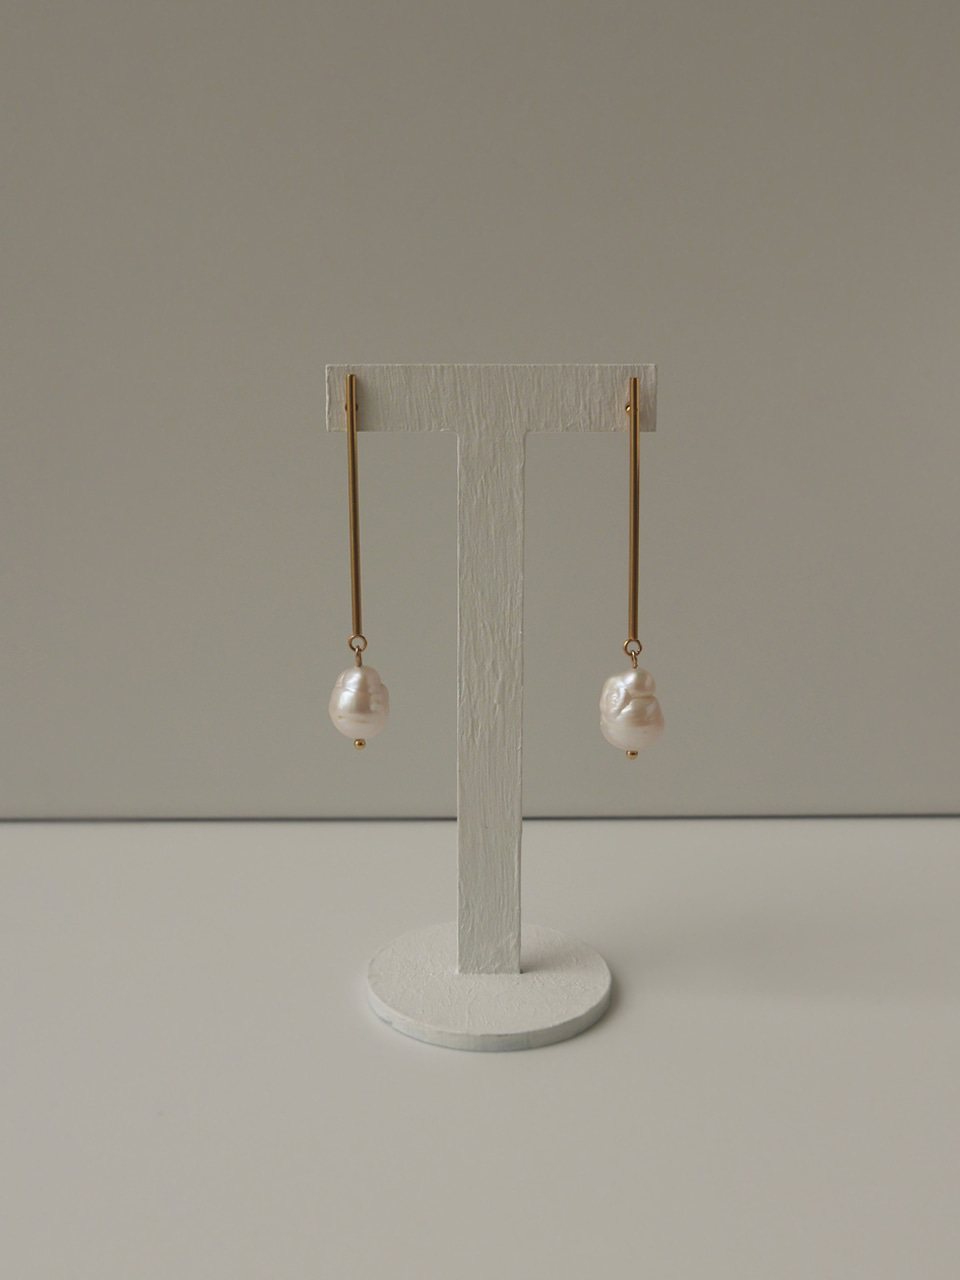 Long bar with pearl earrings